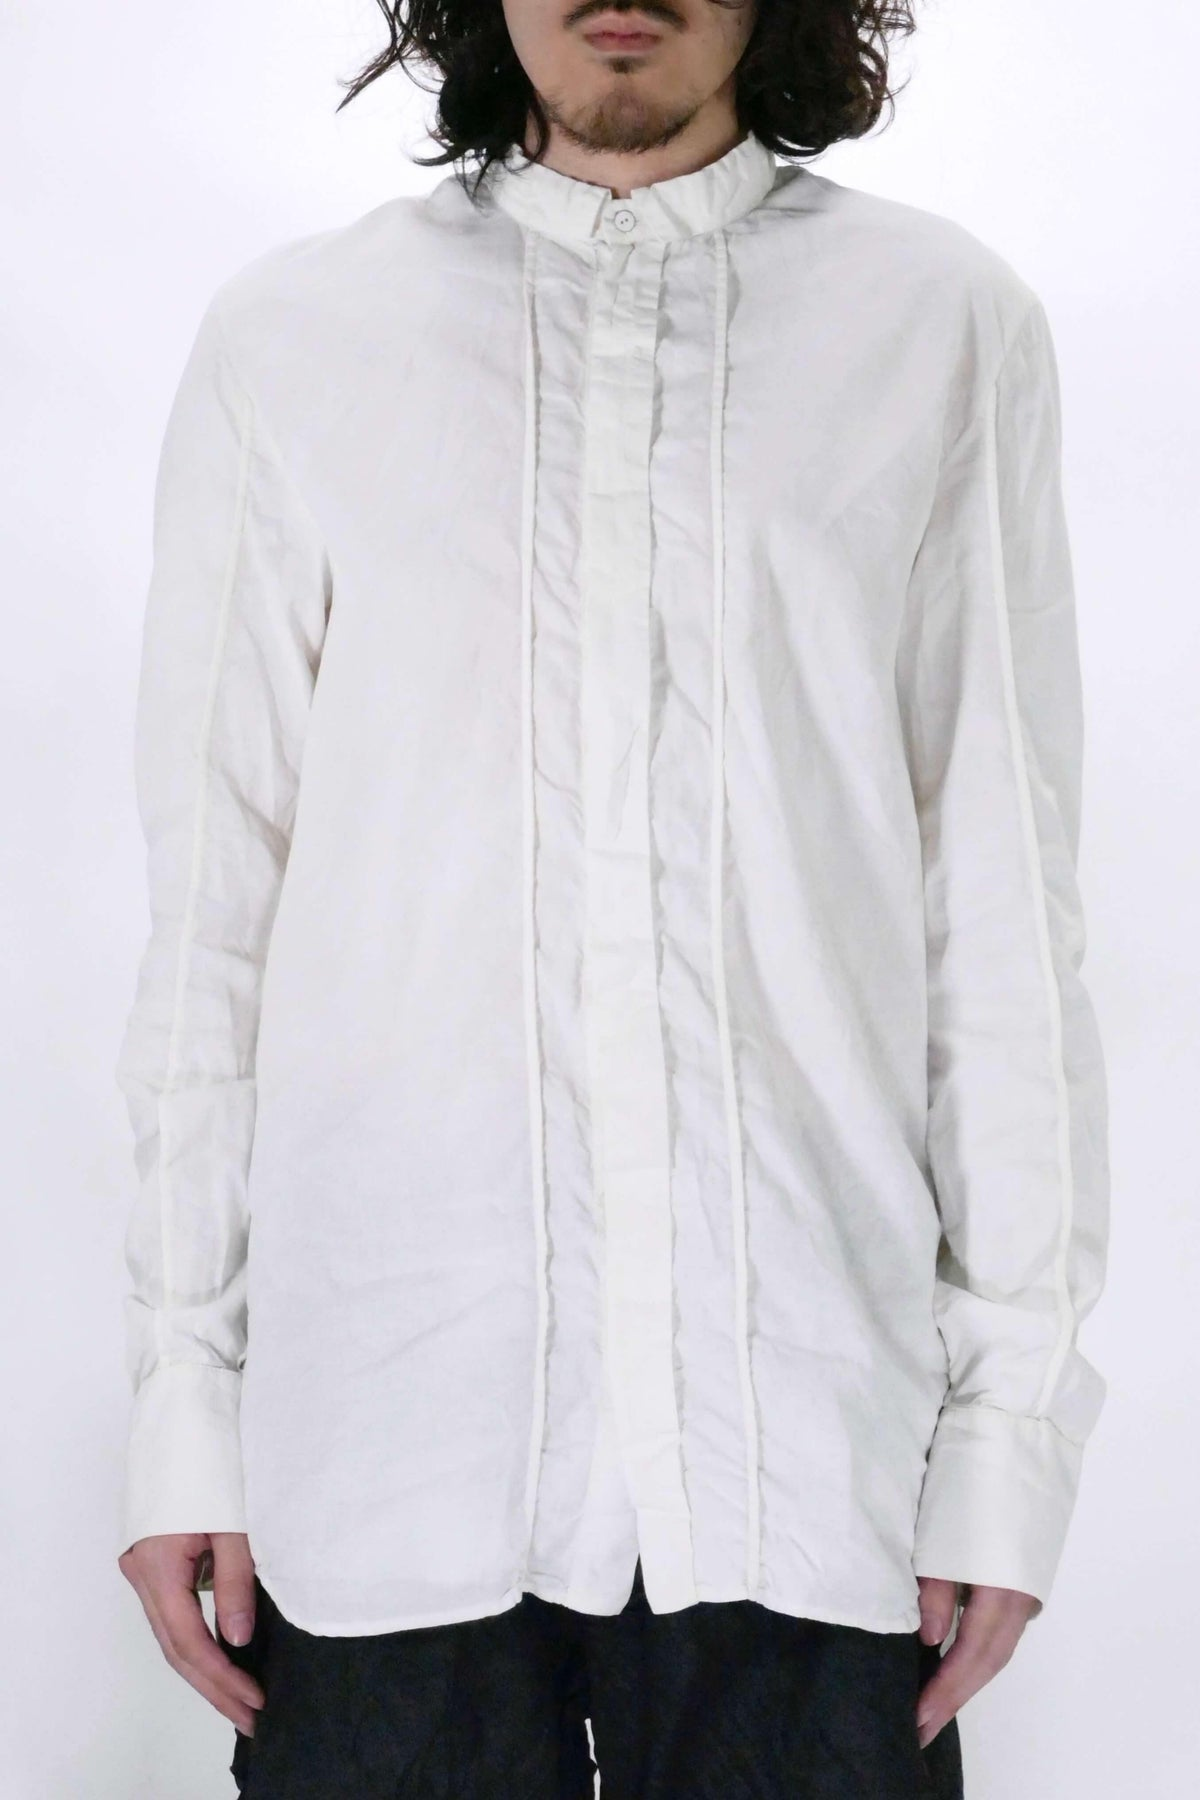 Masnada Creased Shirt - White